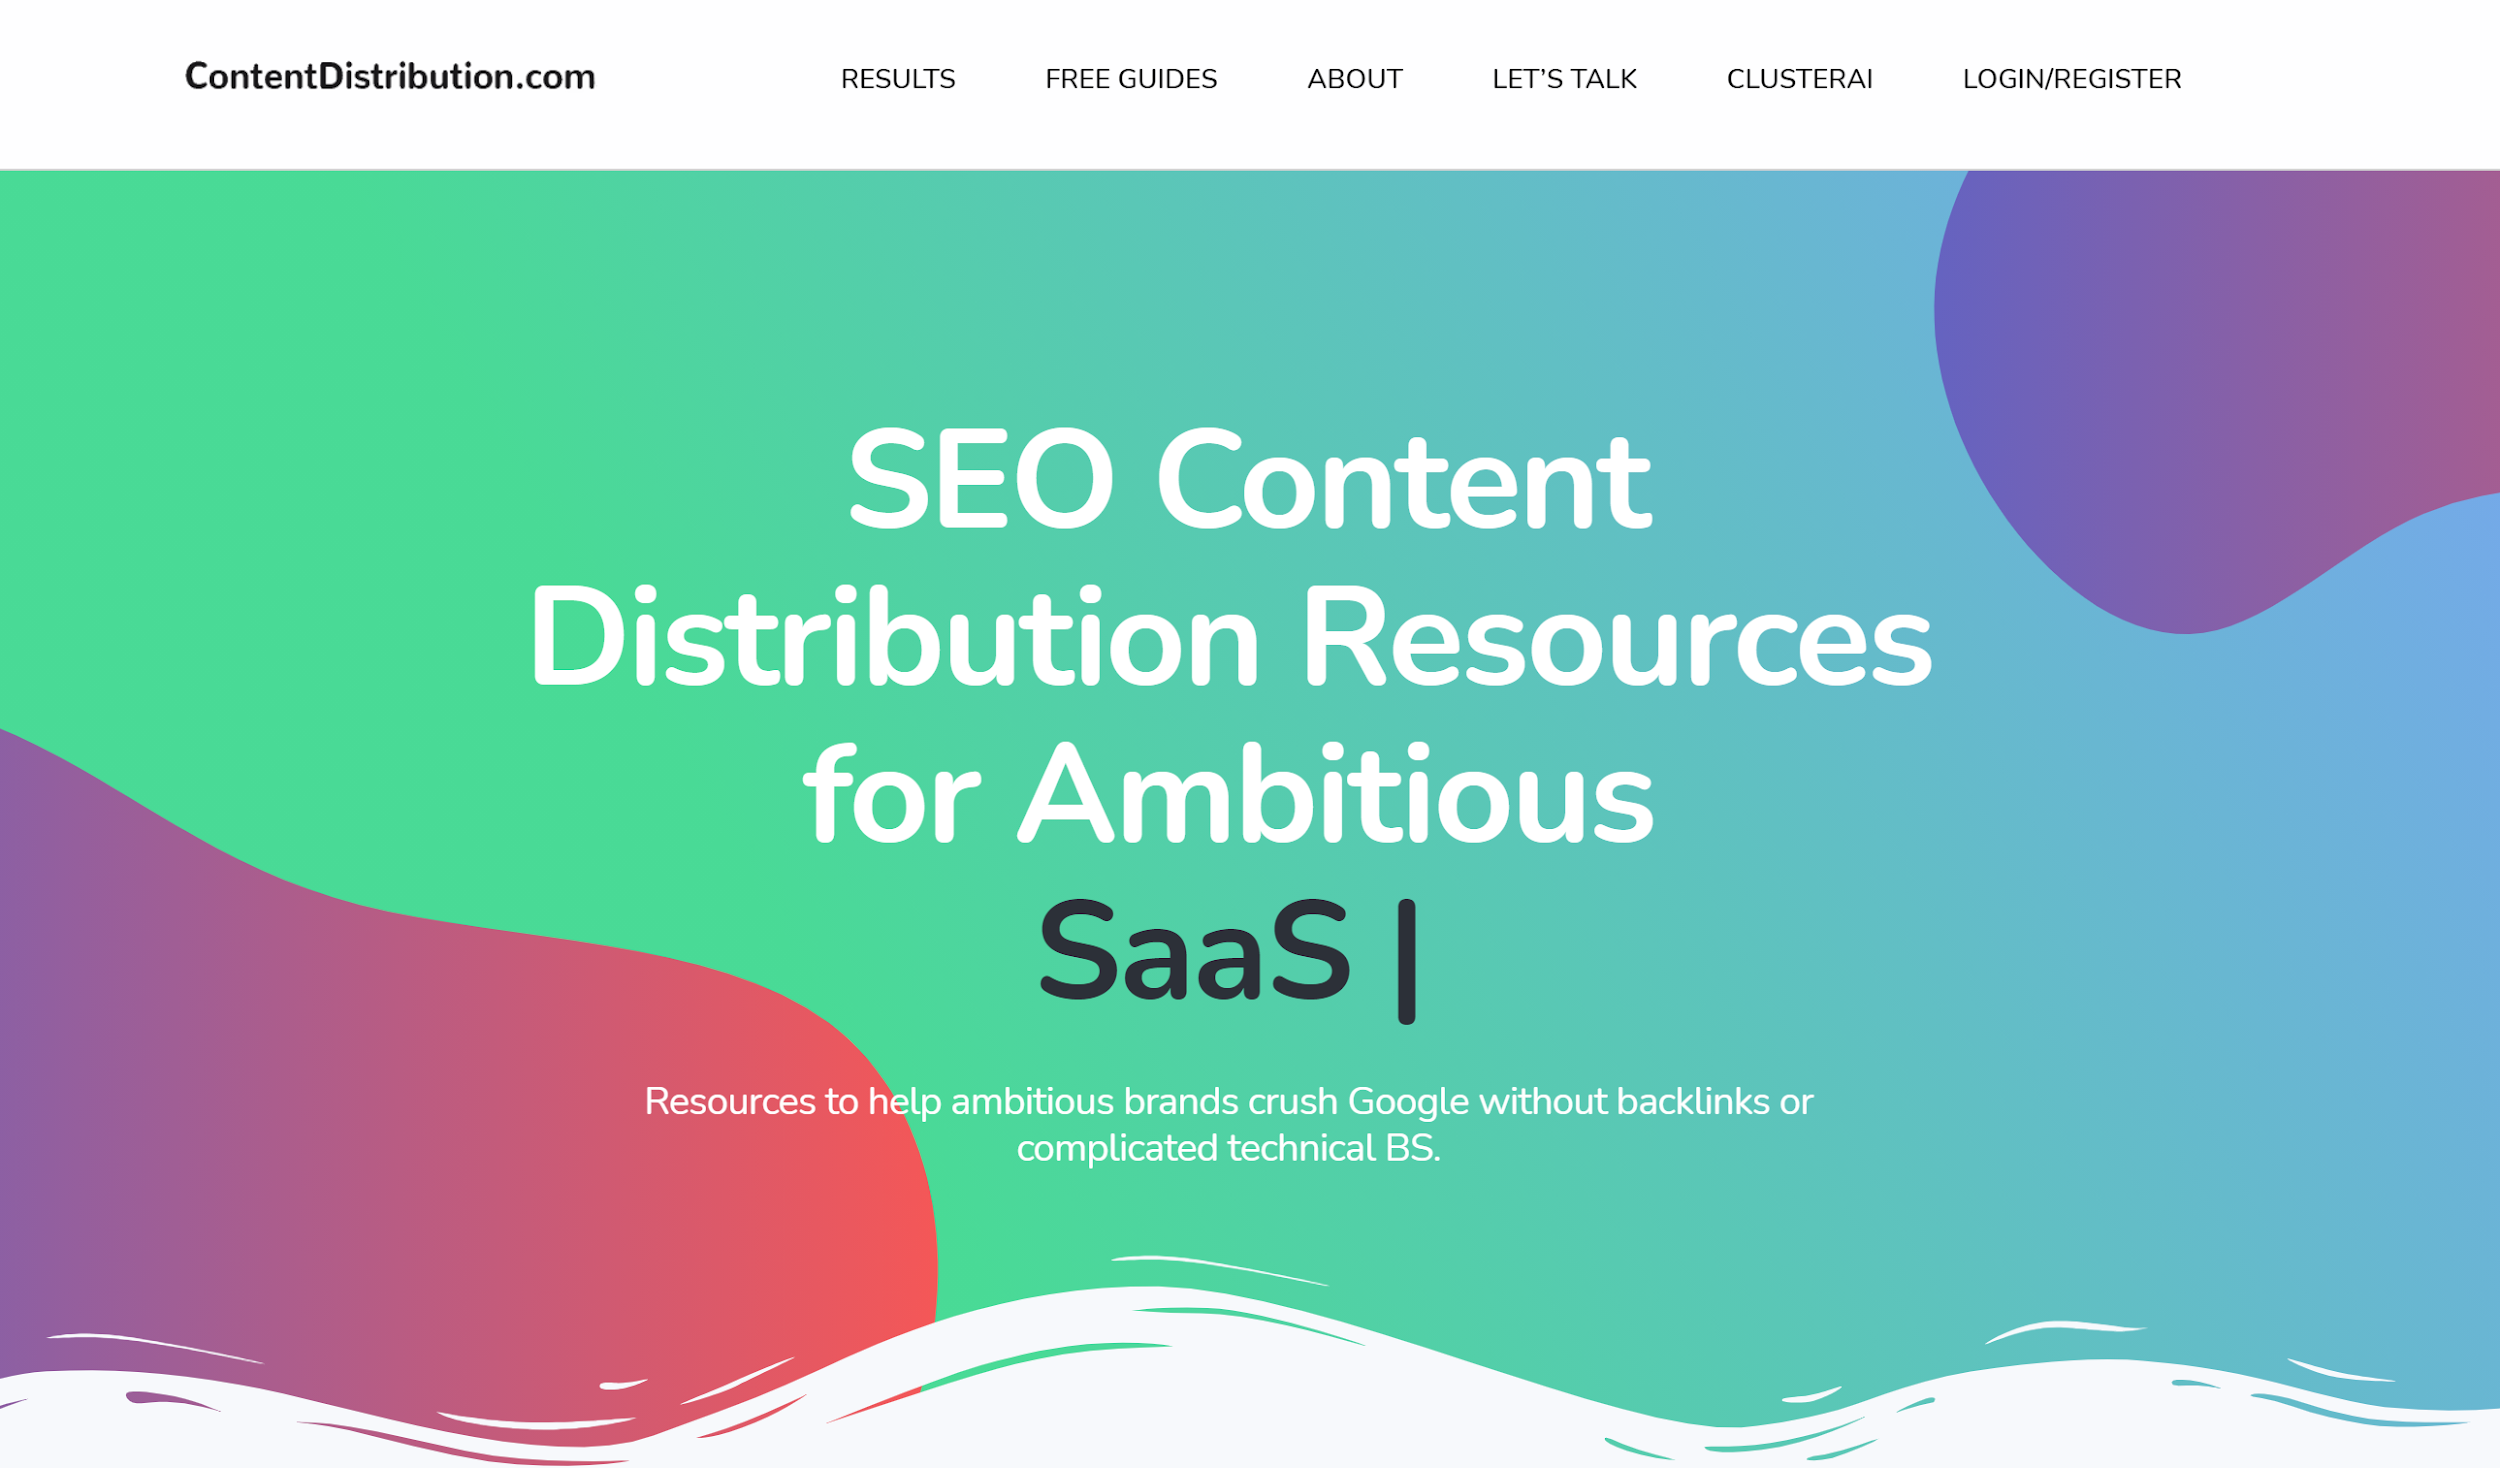 Content Distribution B2B SEO Agency website homepage